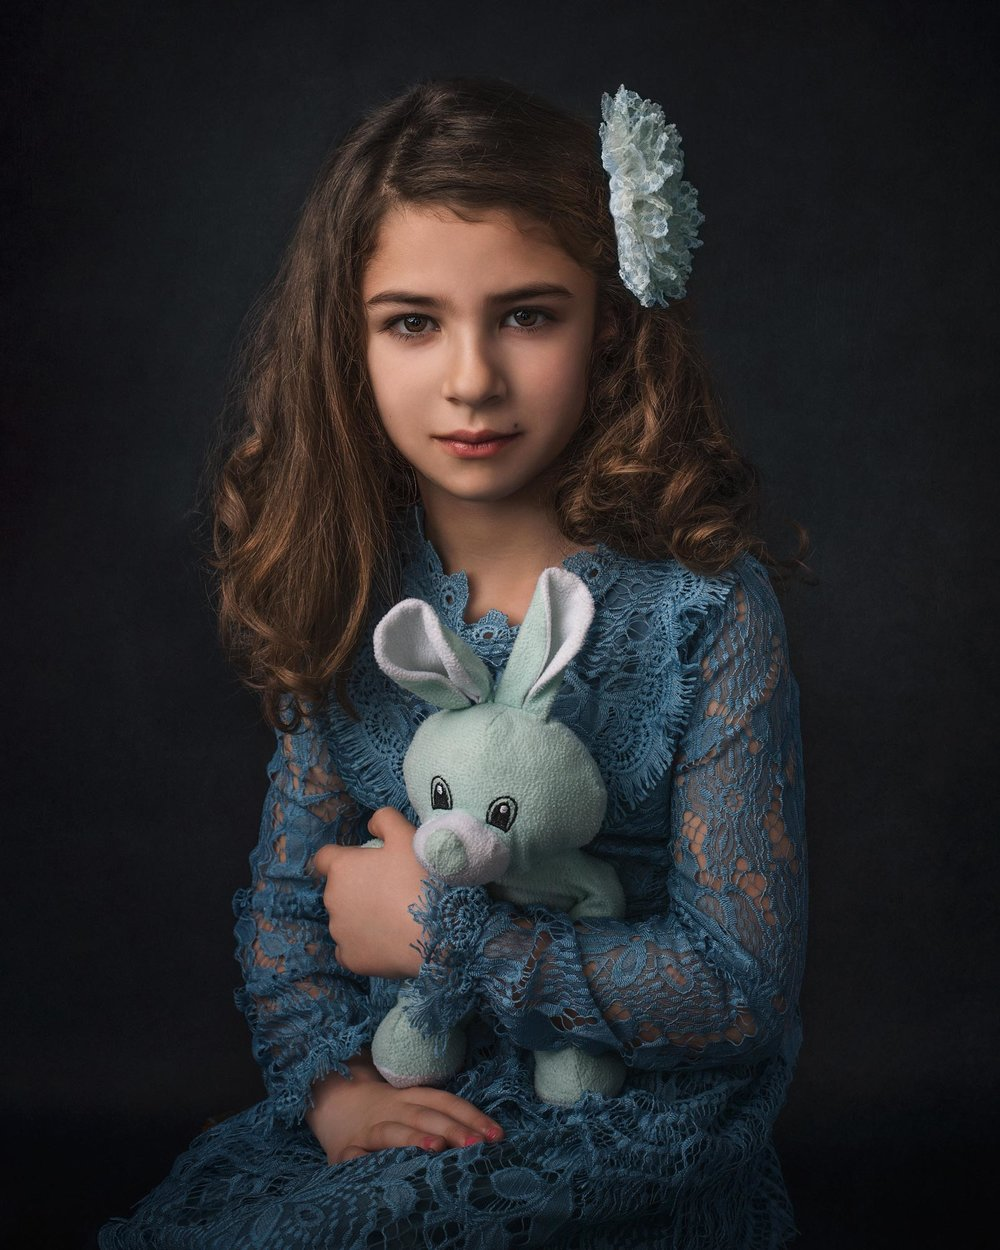 barbara_macferrin_photography_boulder_colorado_80303_fine_art_children_blue_dress_girl_bunny_stuffed_animal.jpg